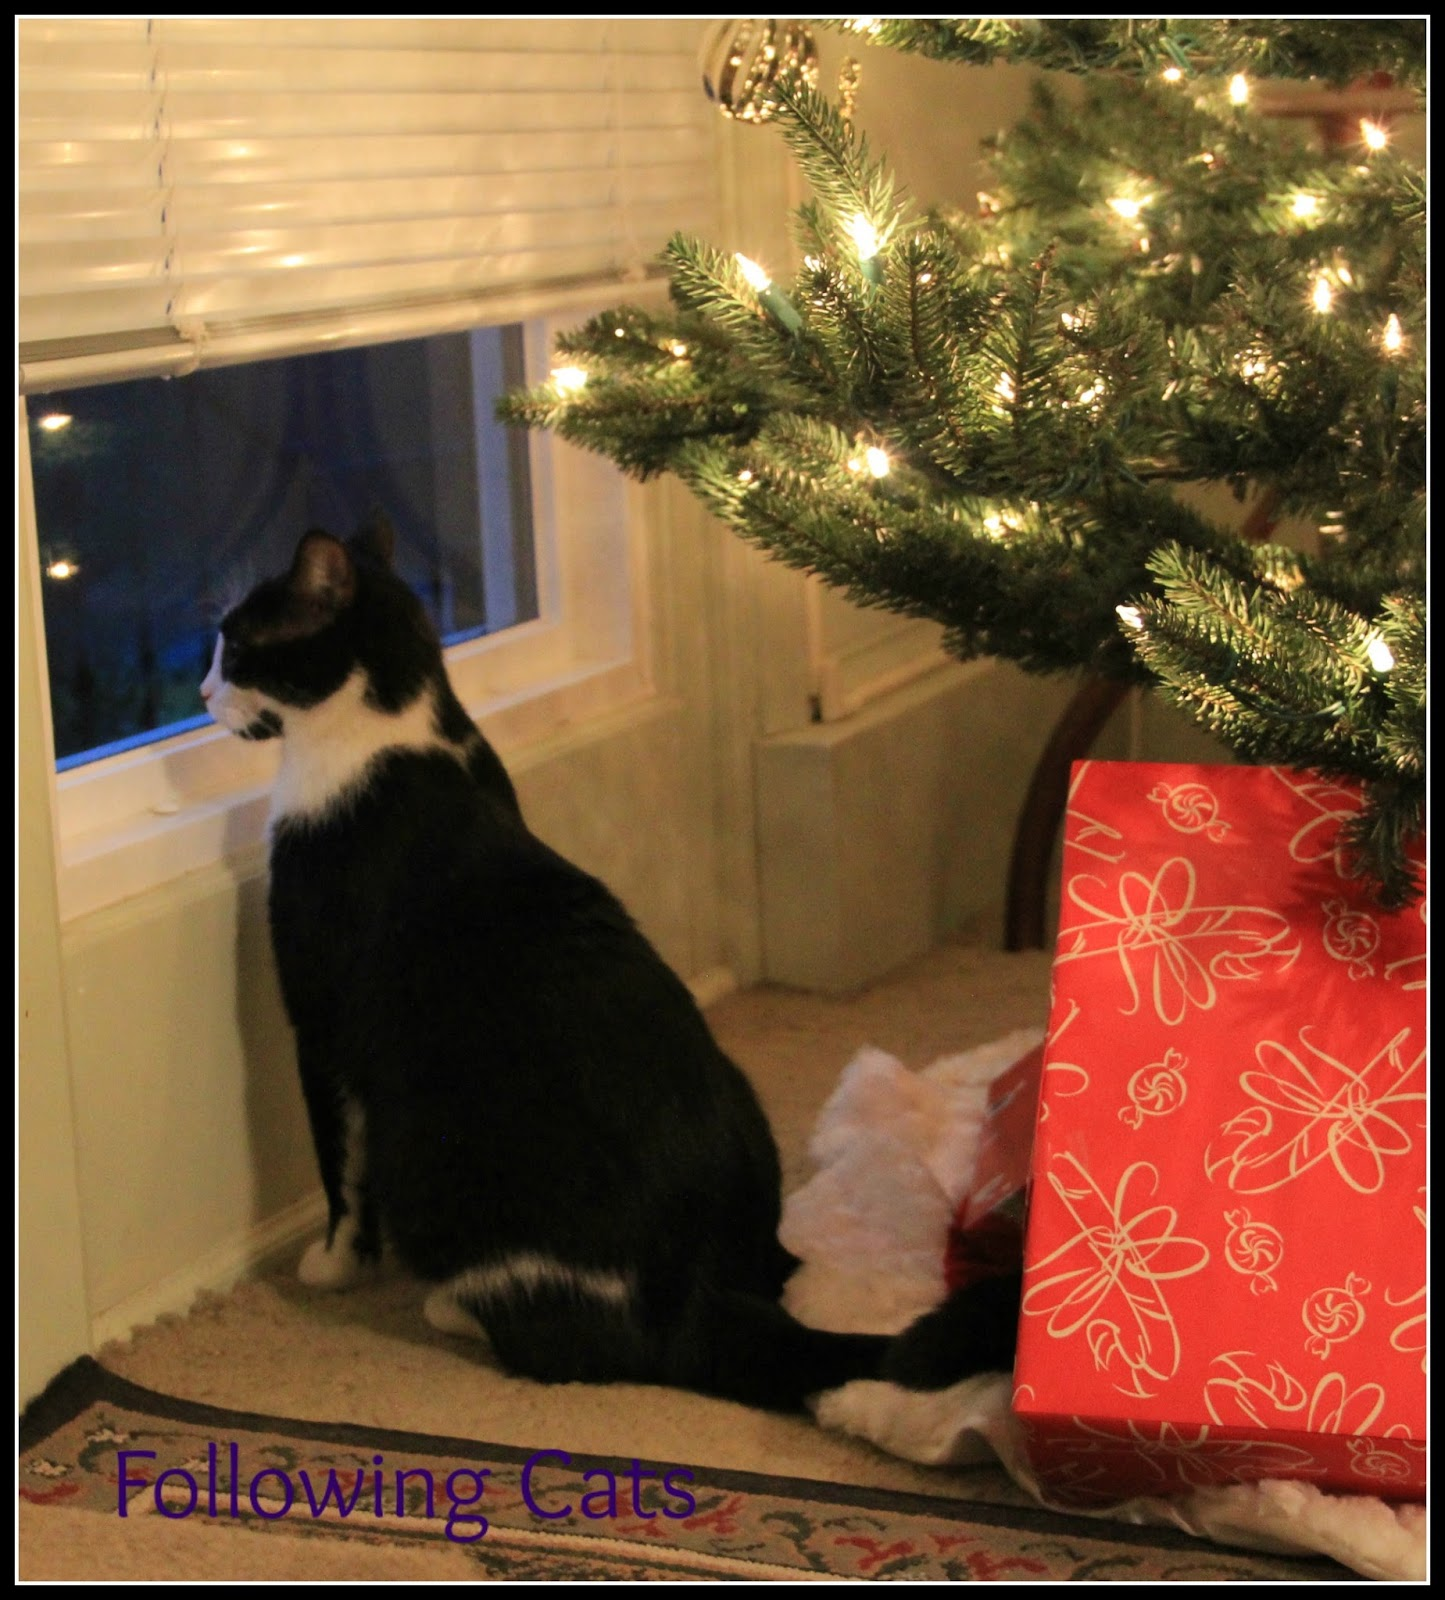 Following Cats: Keep your pets safe during the holidays